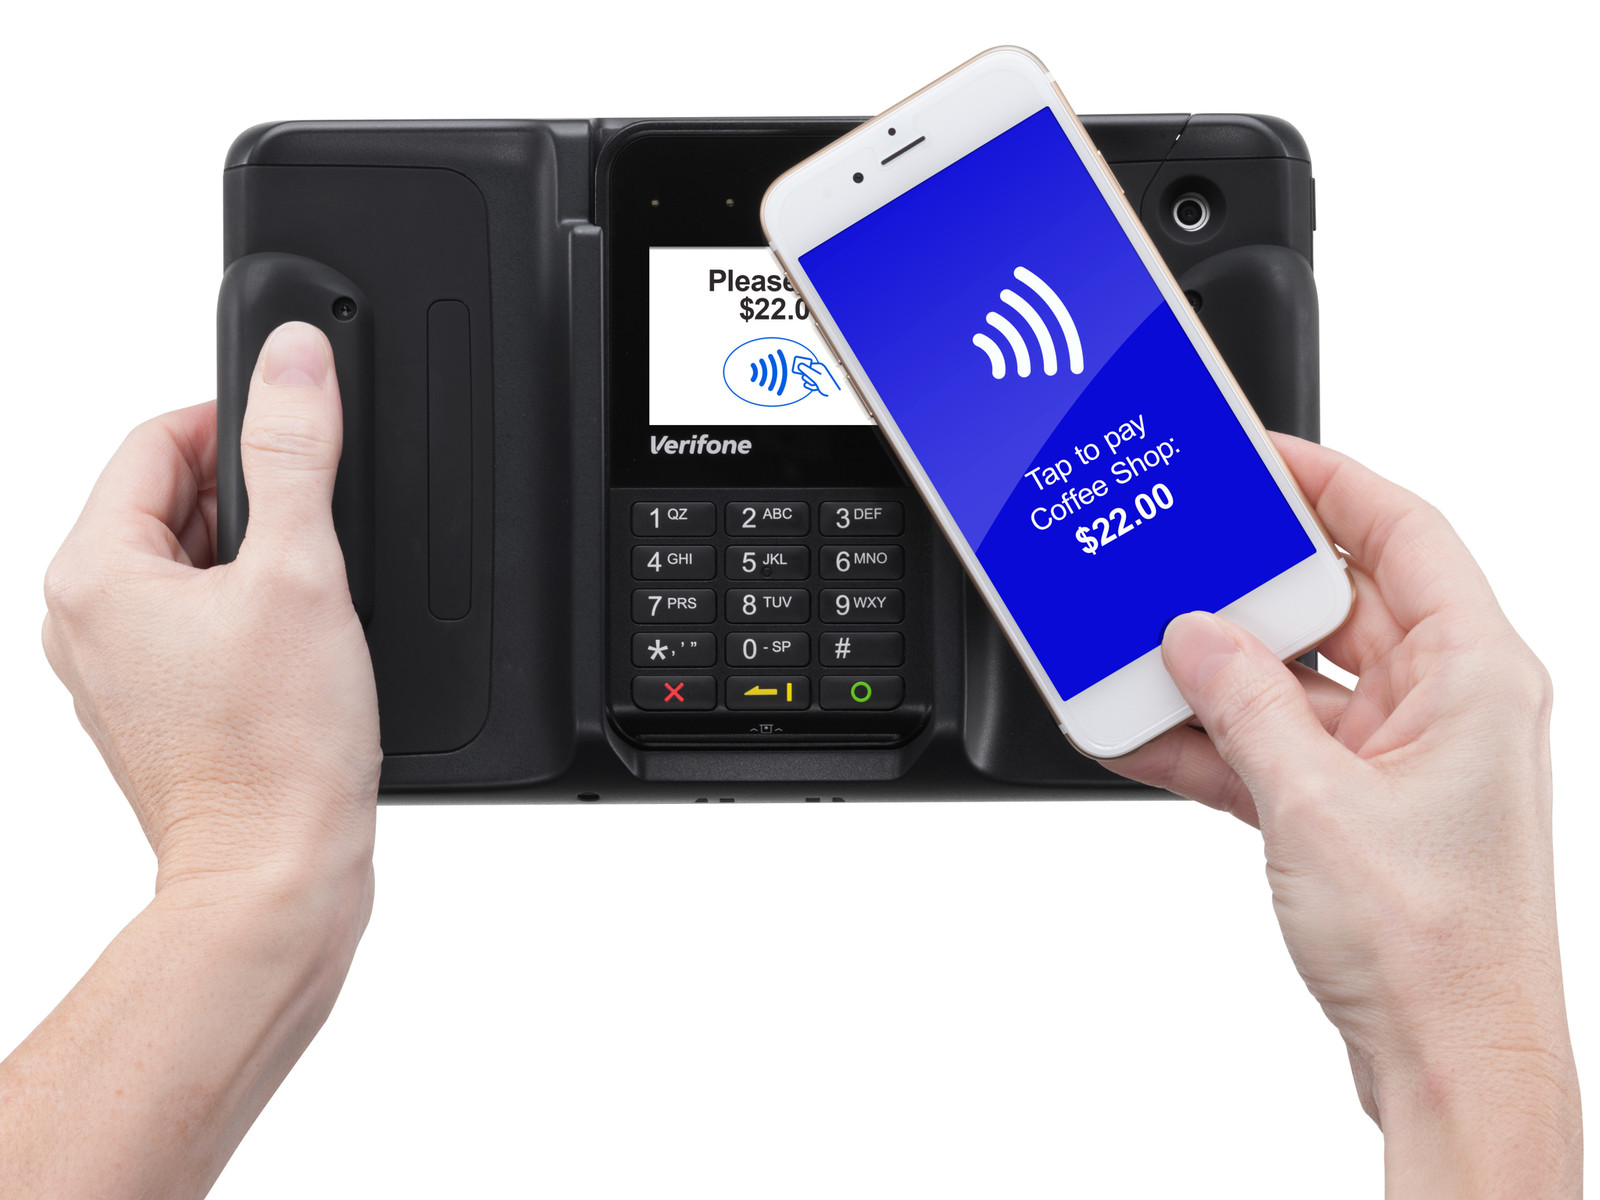 Verifone's new mobile point of sale is ready for Apple Pay